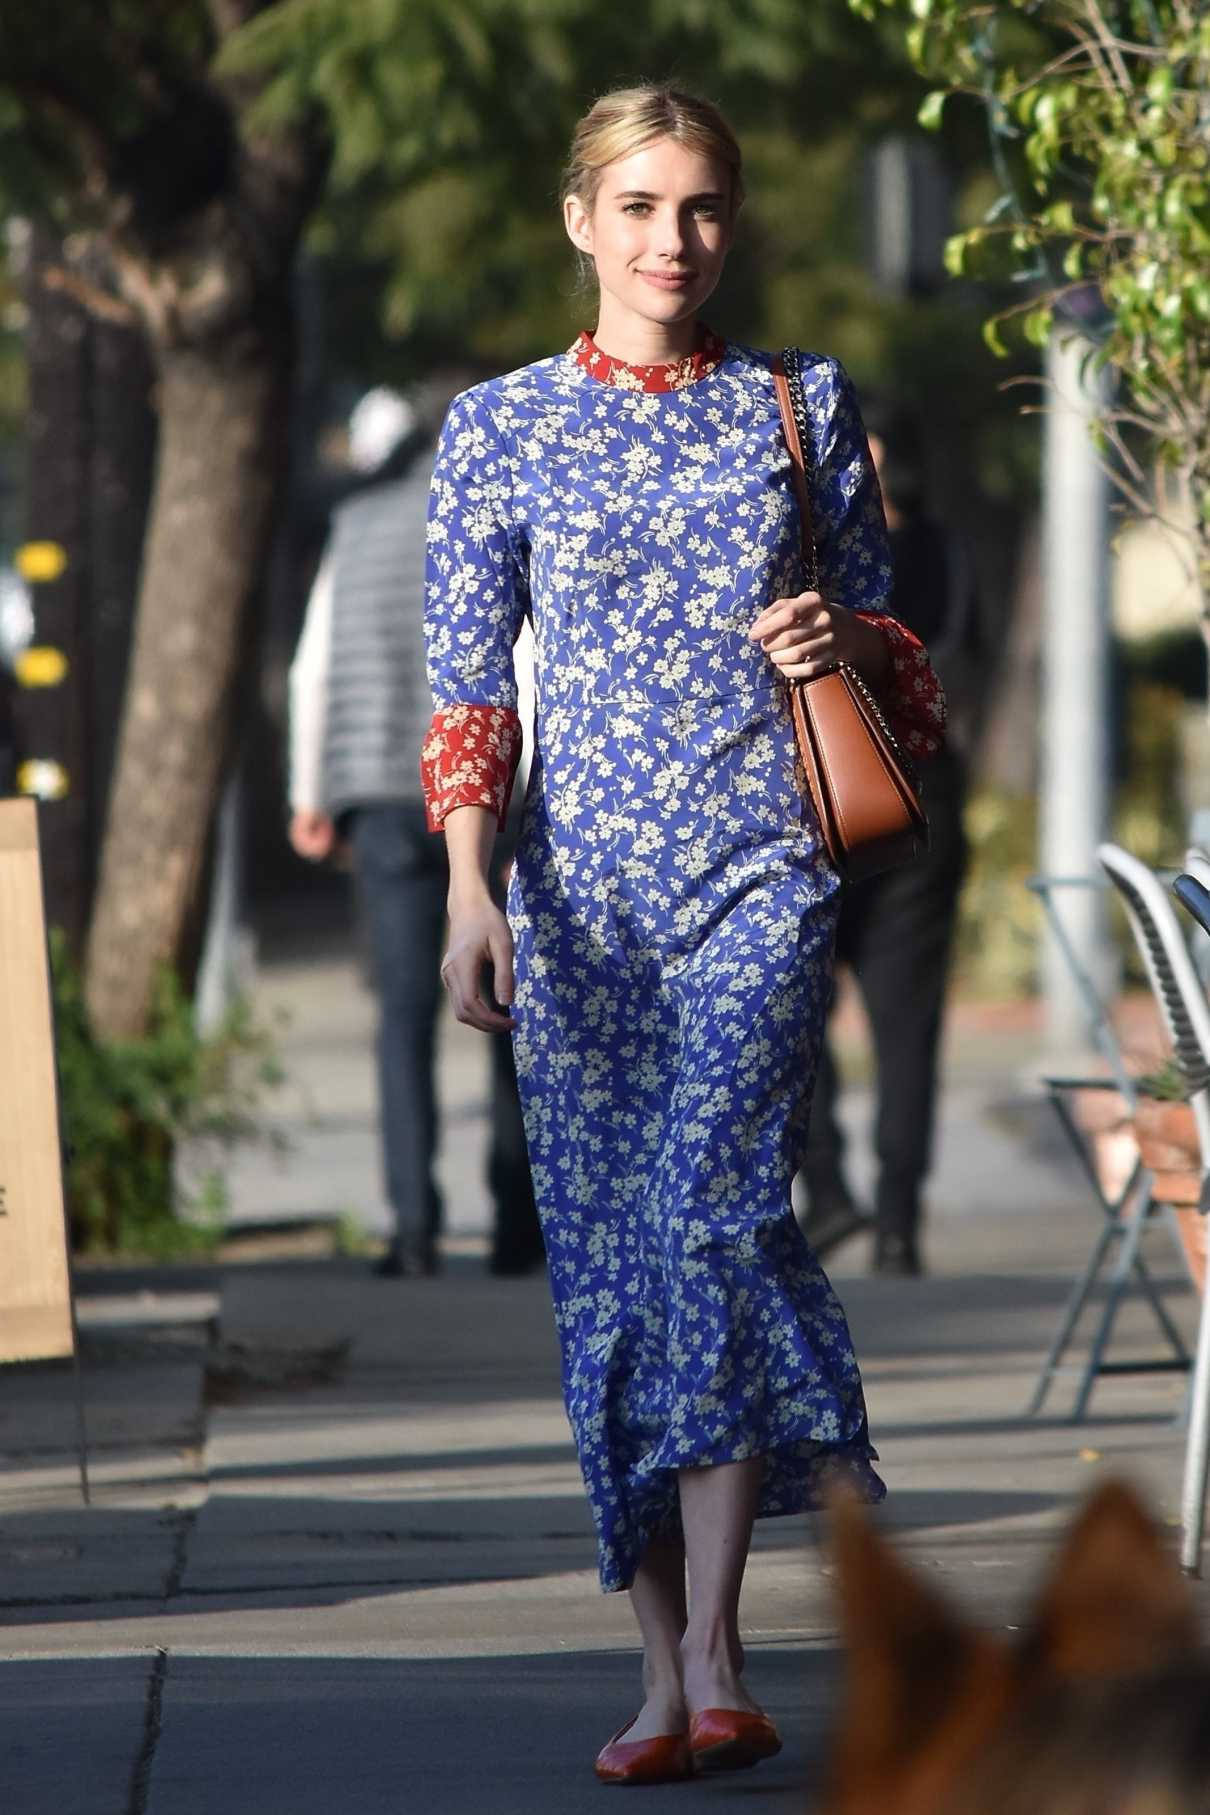 Emma Roberts in a Blue Floral Dress